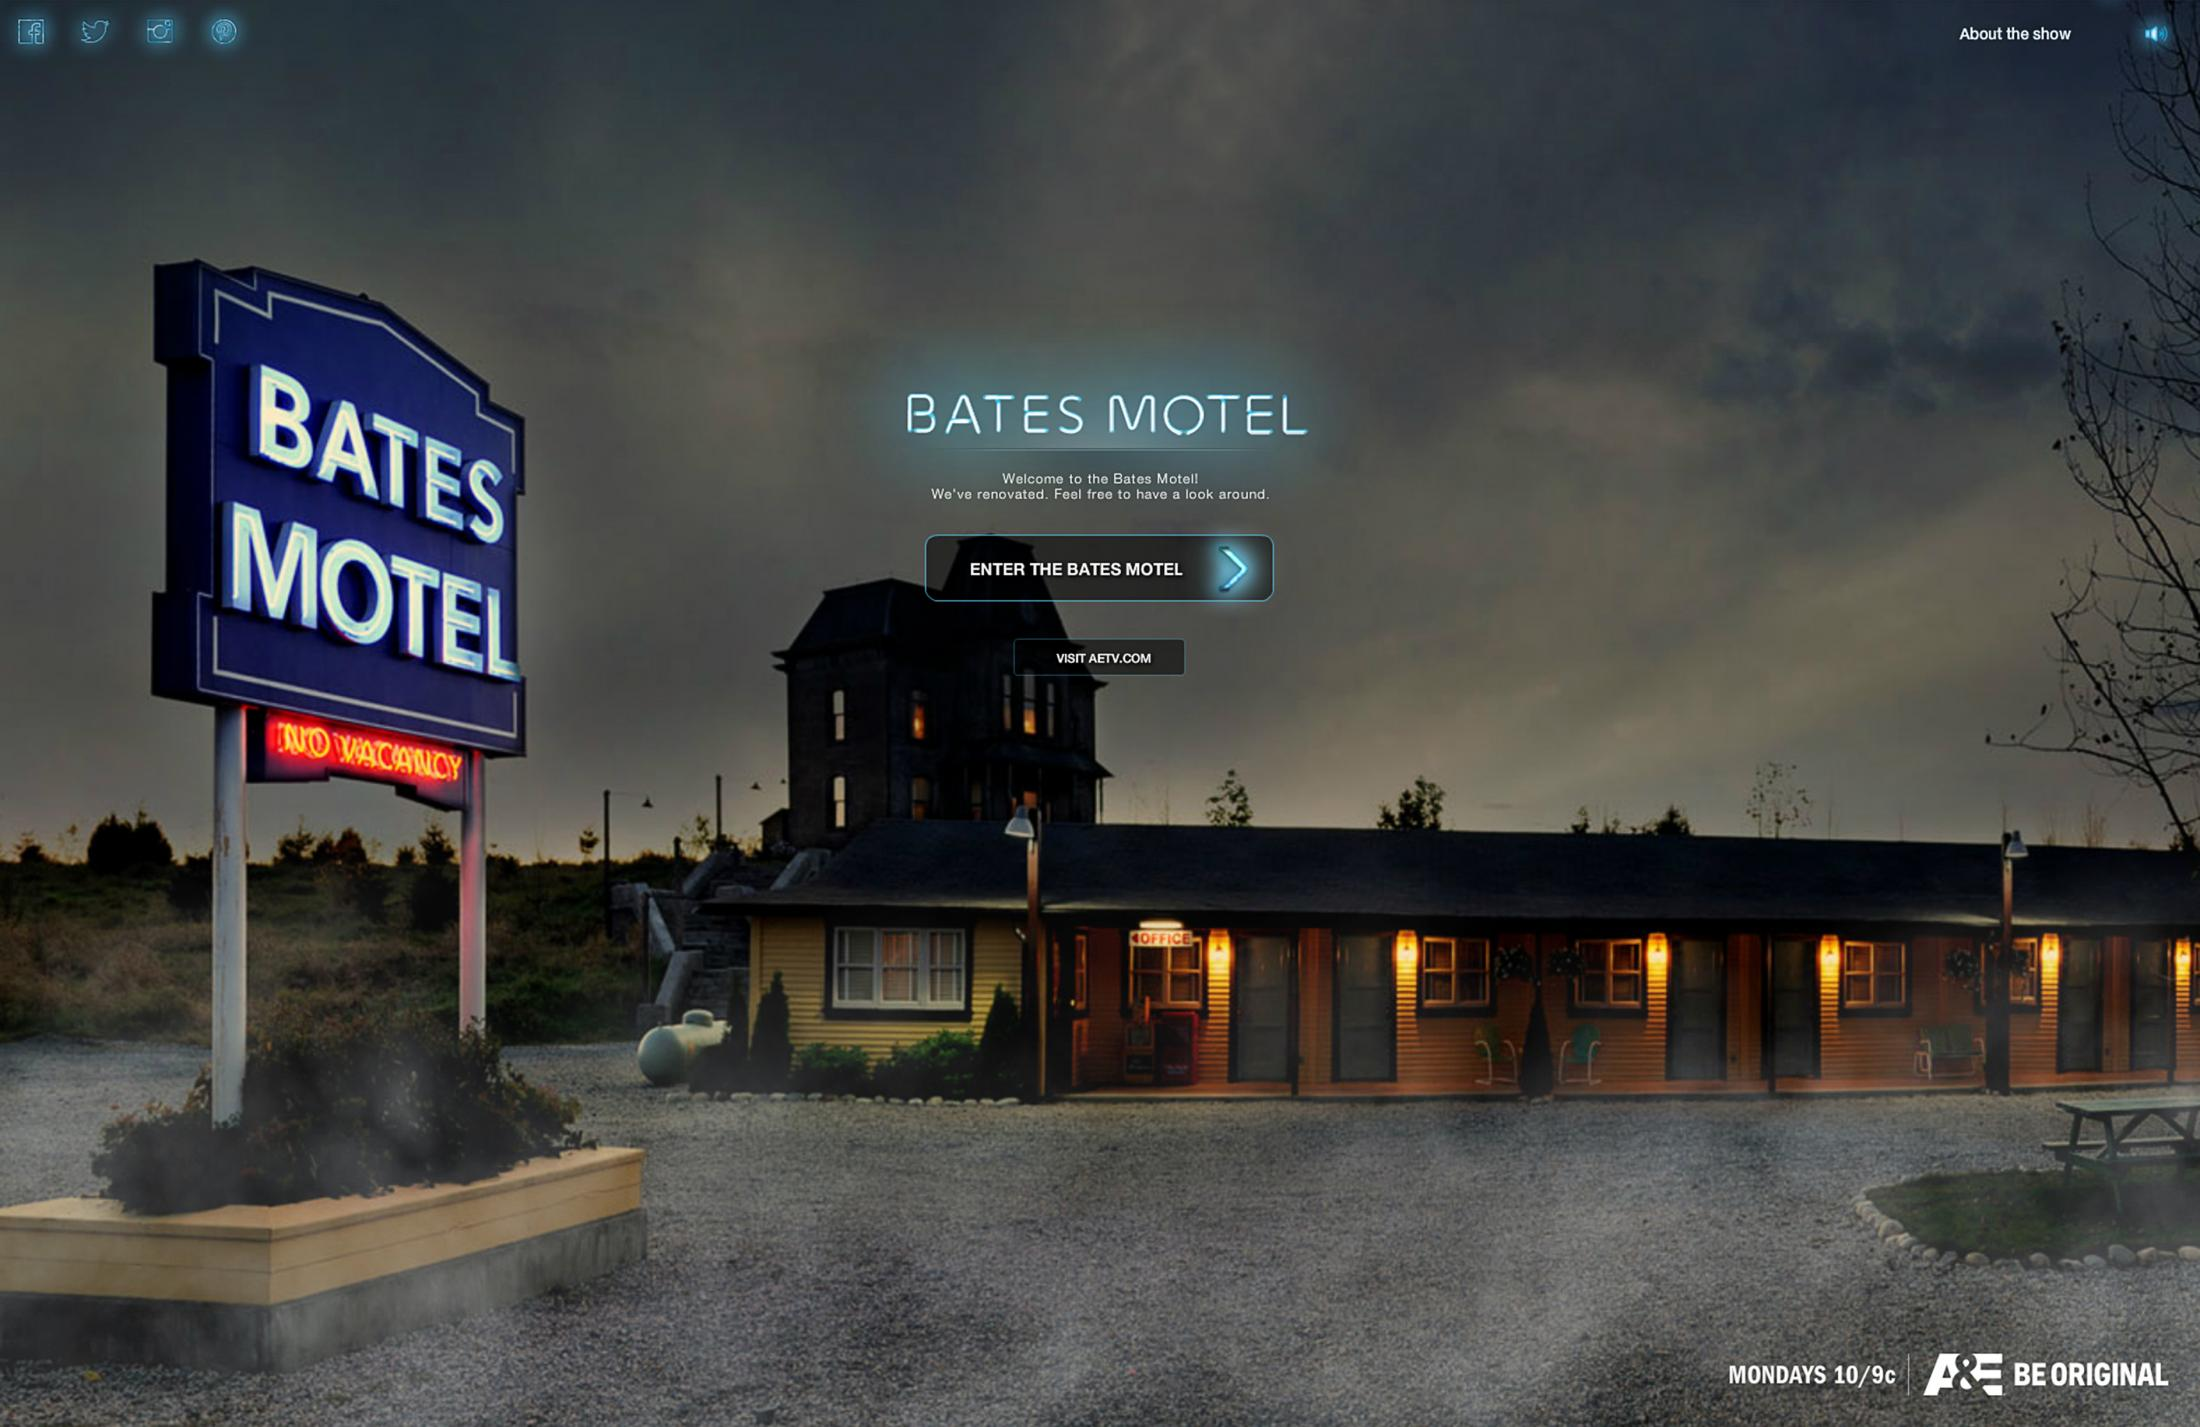 Thumbnail for Bates Motel Season 2 Website